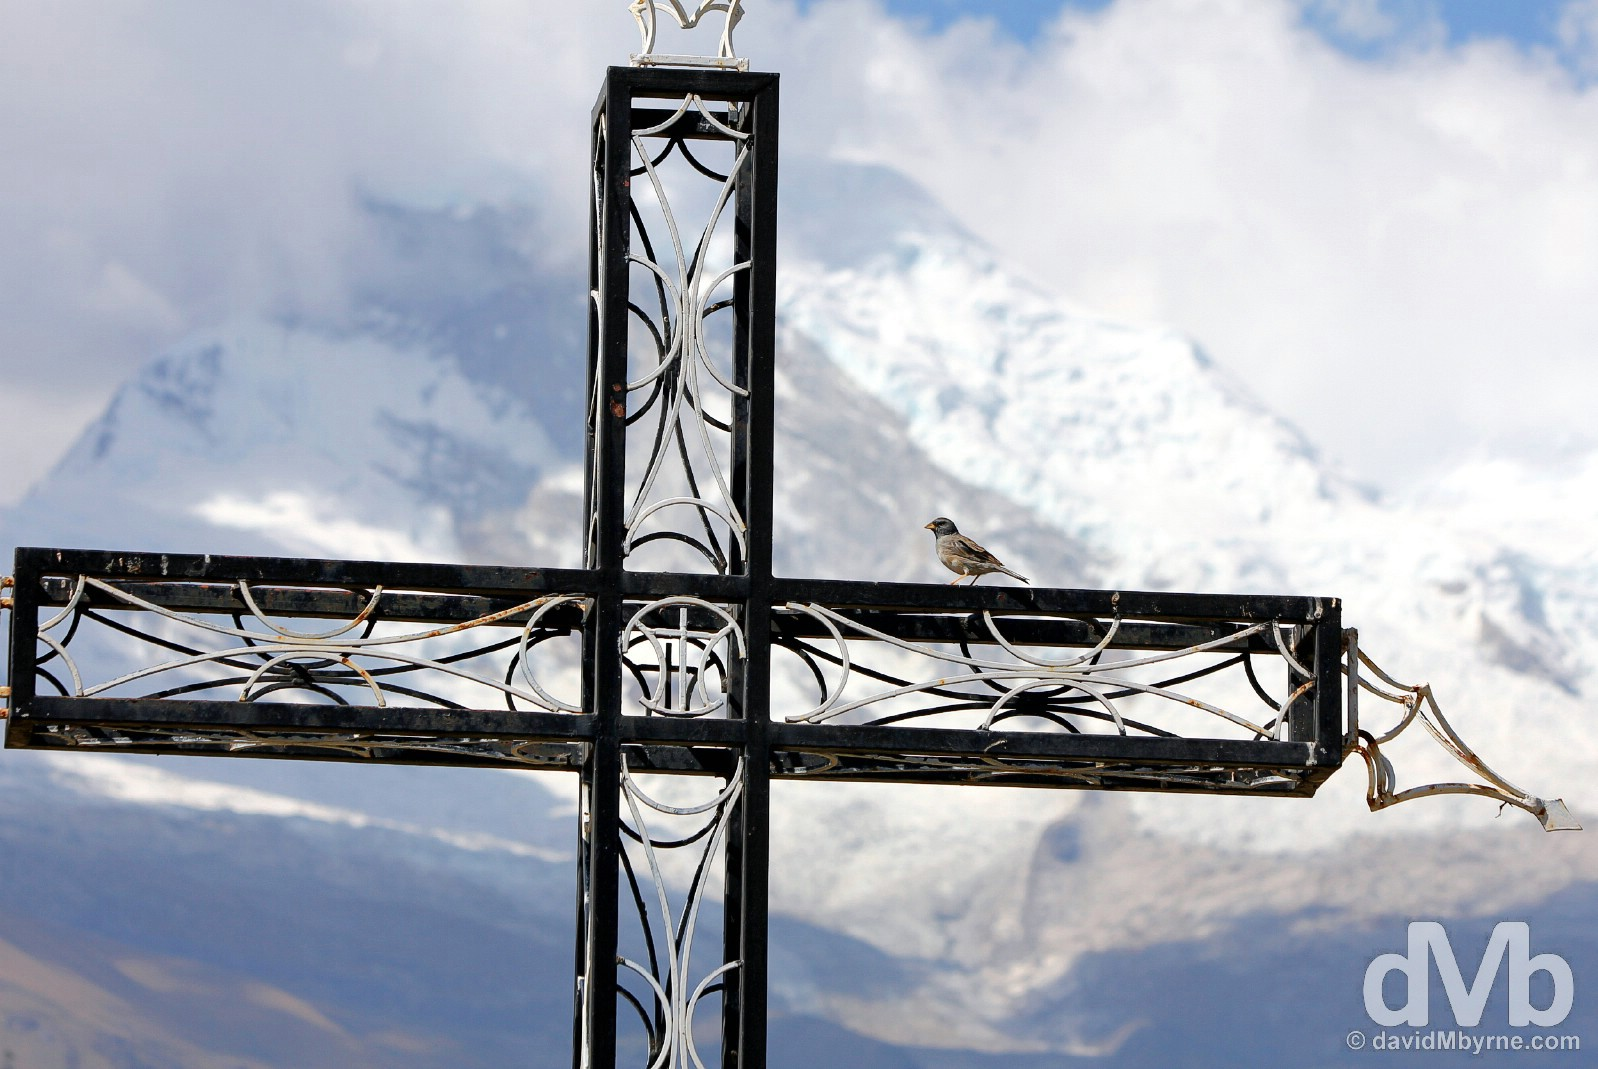 One of the many memorial crosses at the site of the submerged old town of Yungay, Ancash, Peru. August 5, 2015.